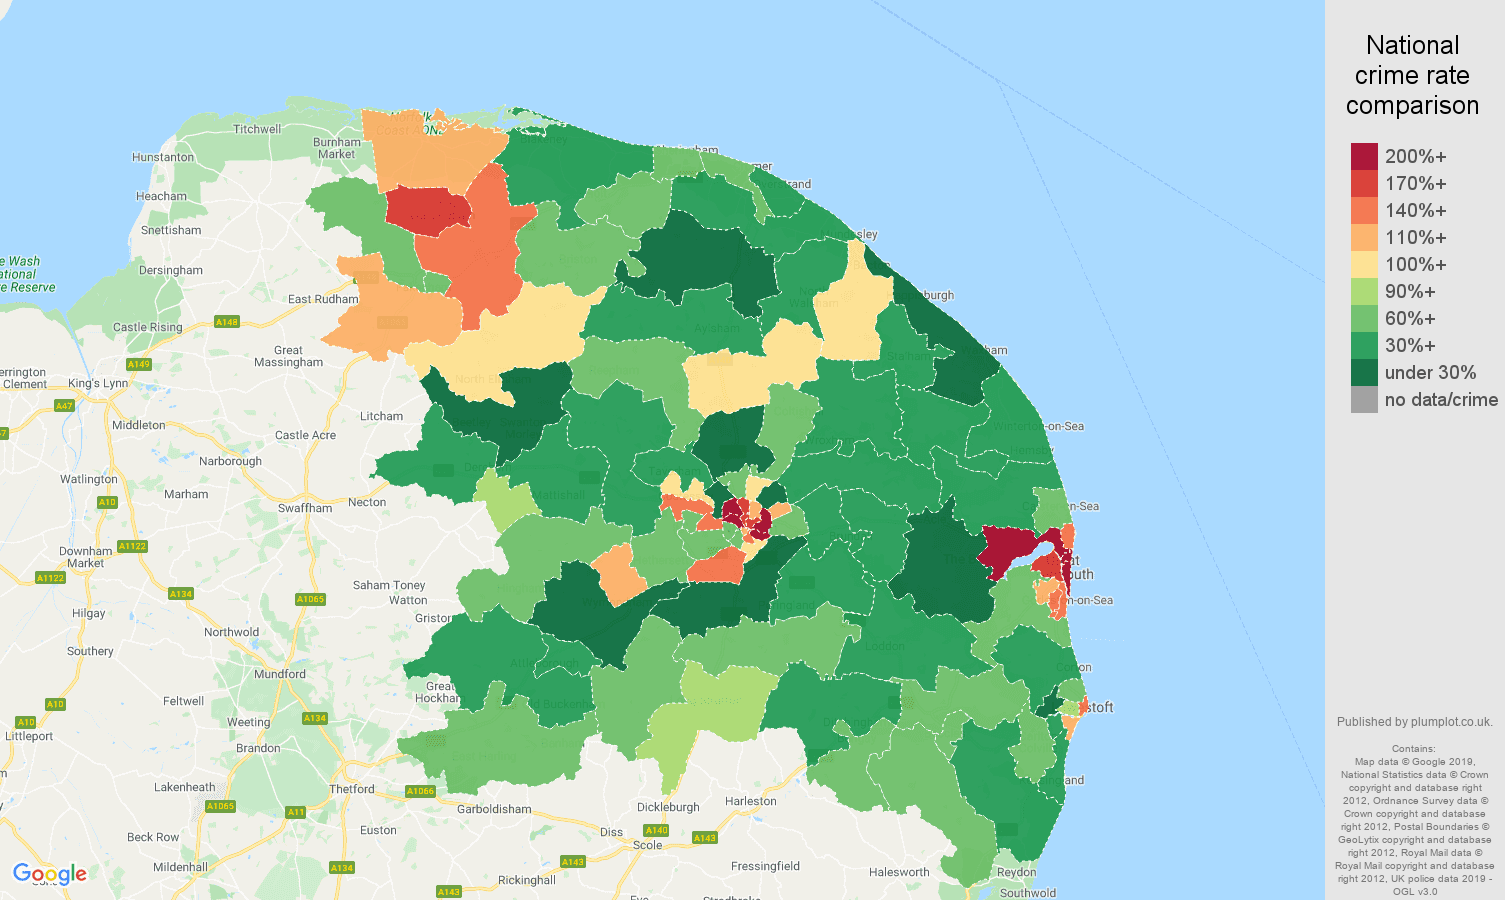 Norwich other crime rate comparison map